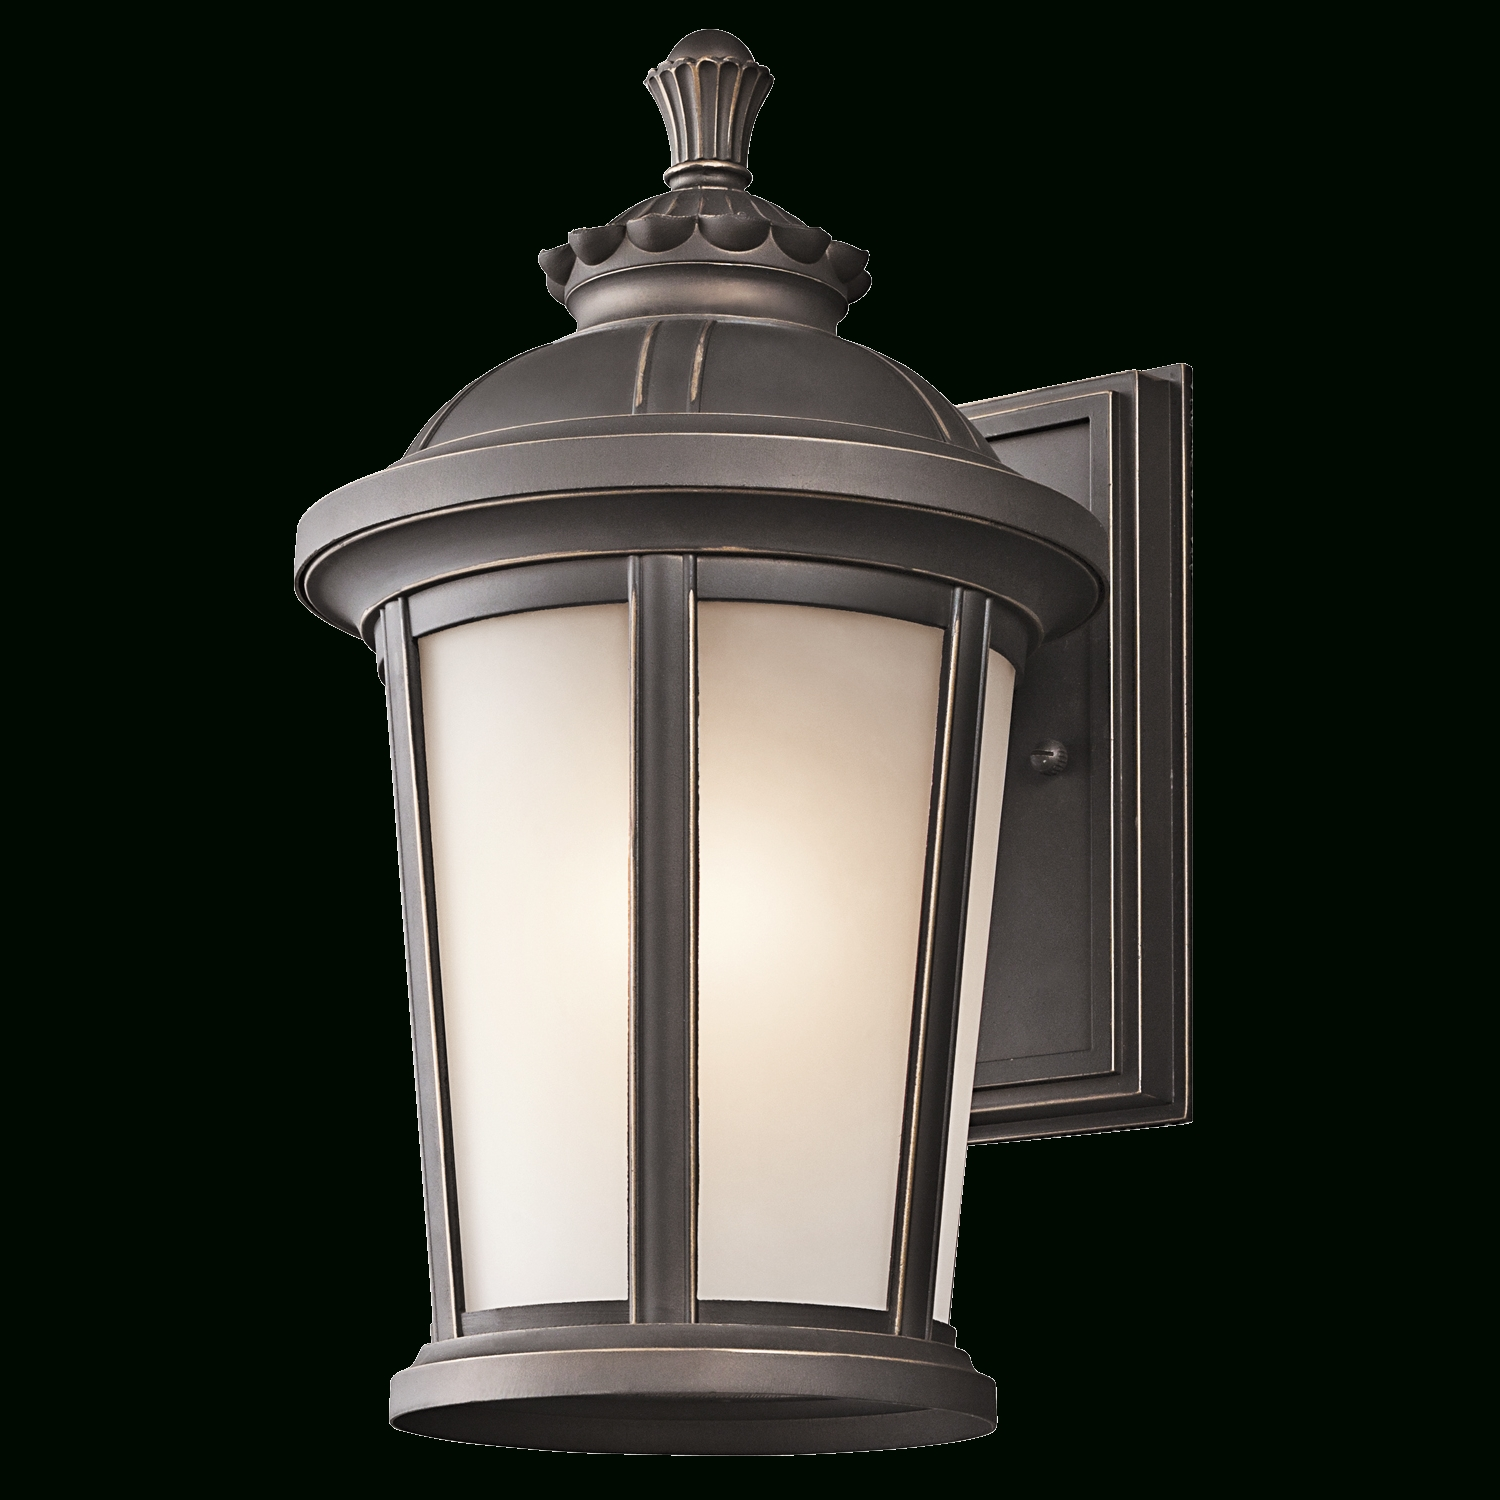 Most Current Missionshaker Outdoor Wall Lighting Wayfair Manhattan 1 Light Throughout Modern Garden Porch Light Fixtures At Wayfair (View 5 of 20)